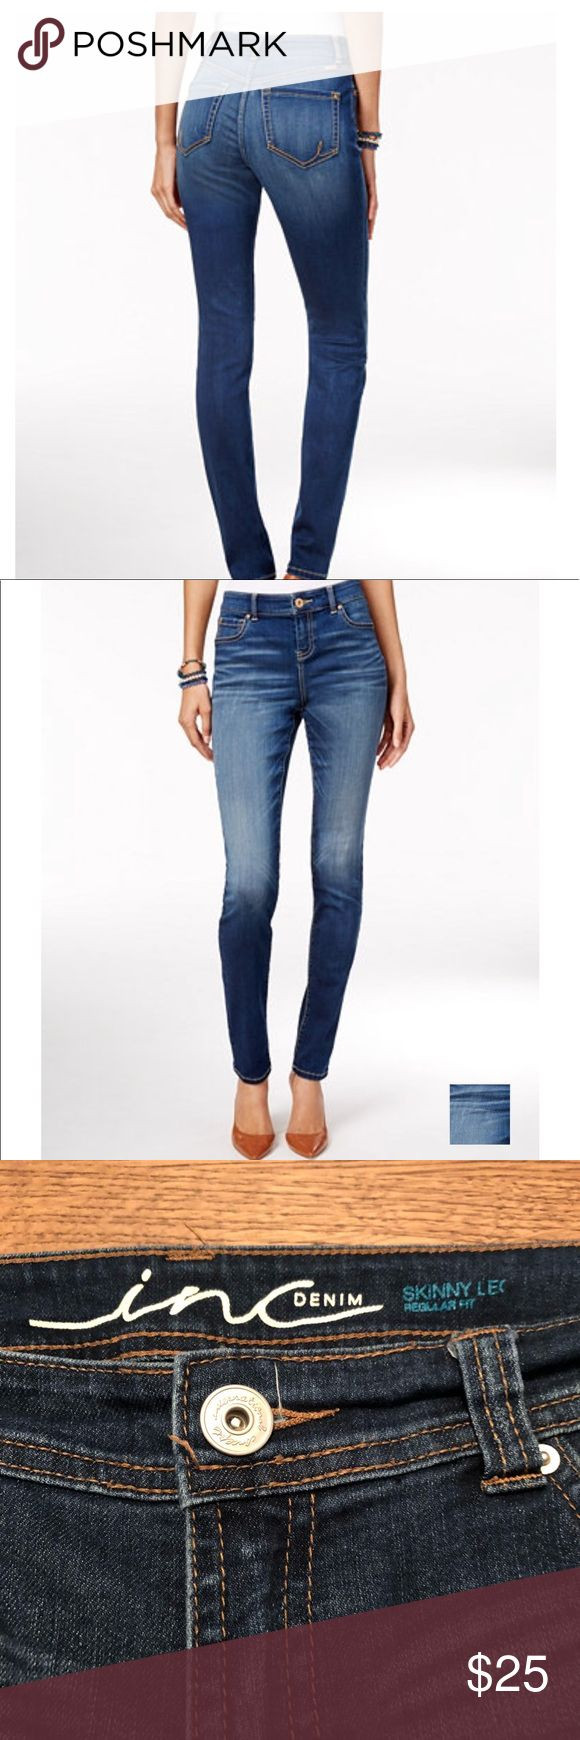 """Inc skinny jeans Inc denied m skinny leg regular fit jeans, size 8, mid rise, soft and stretchy denim, excellent condition   Inseam  31"""" Rise  8.5"""" Waist  17"""" Leg opening  6"""" Bin11 INC International Concepts Jeans Skinny"""